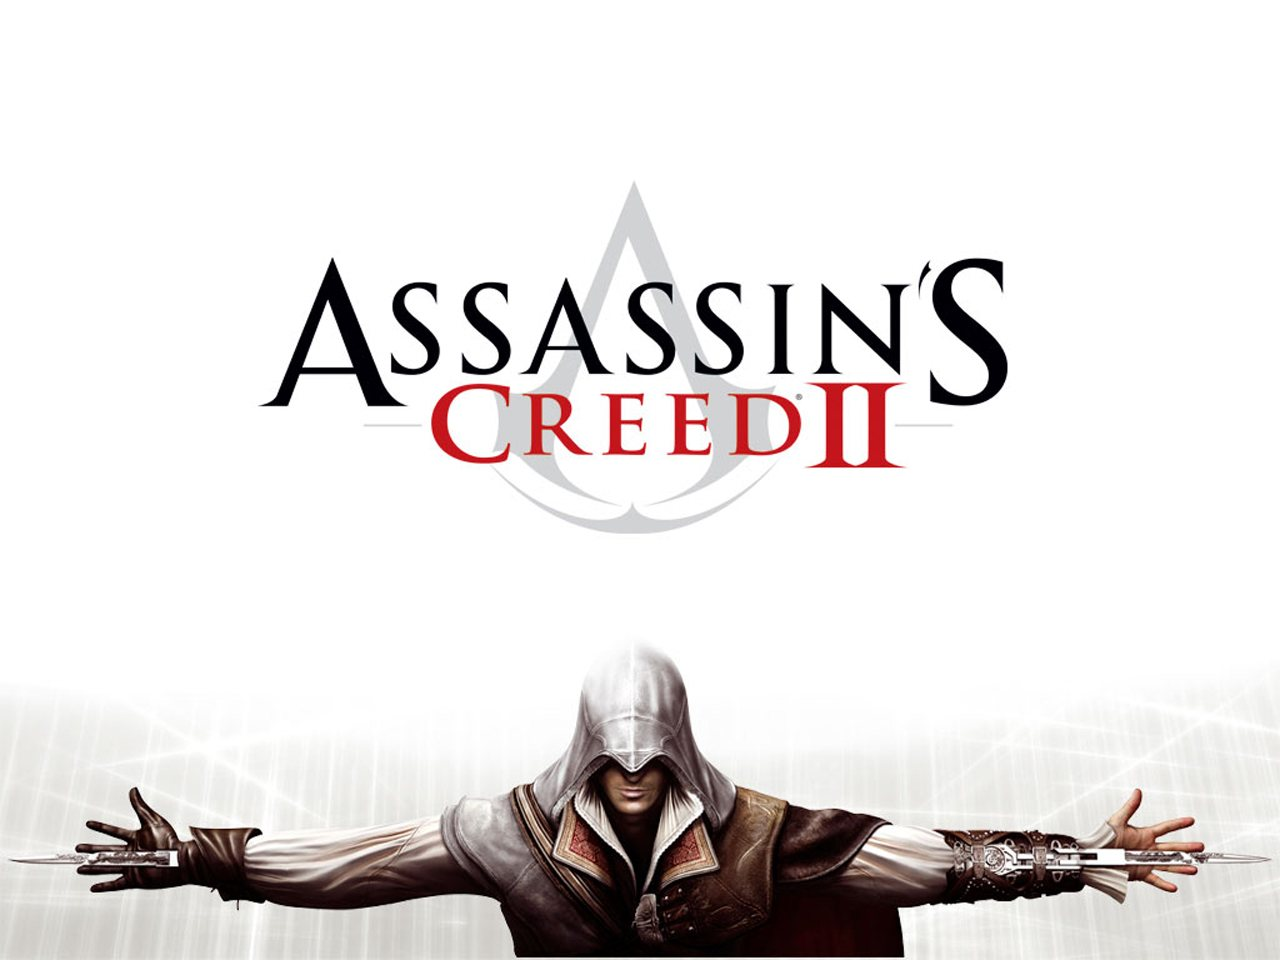 http://4.bp.blogspot.com/_D7d-cYV89YY/S-lySFxwtAI/AAAAAAAAACY/wuemj2rKOuQ/s1600/assassins-creed-2-wallpaper-2.jpg